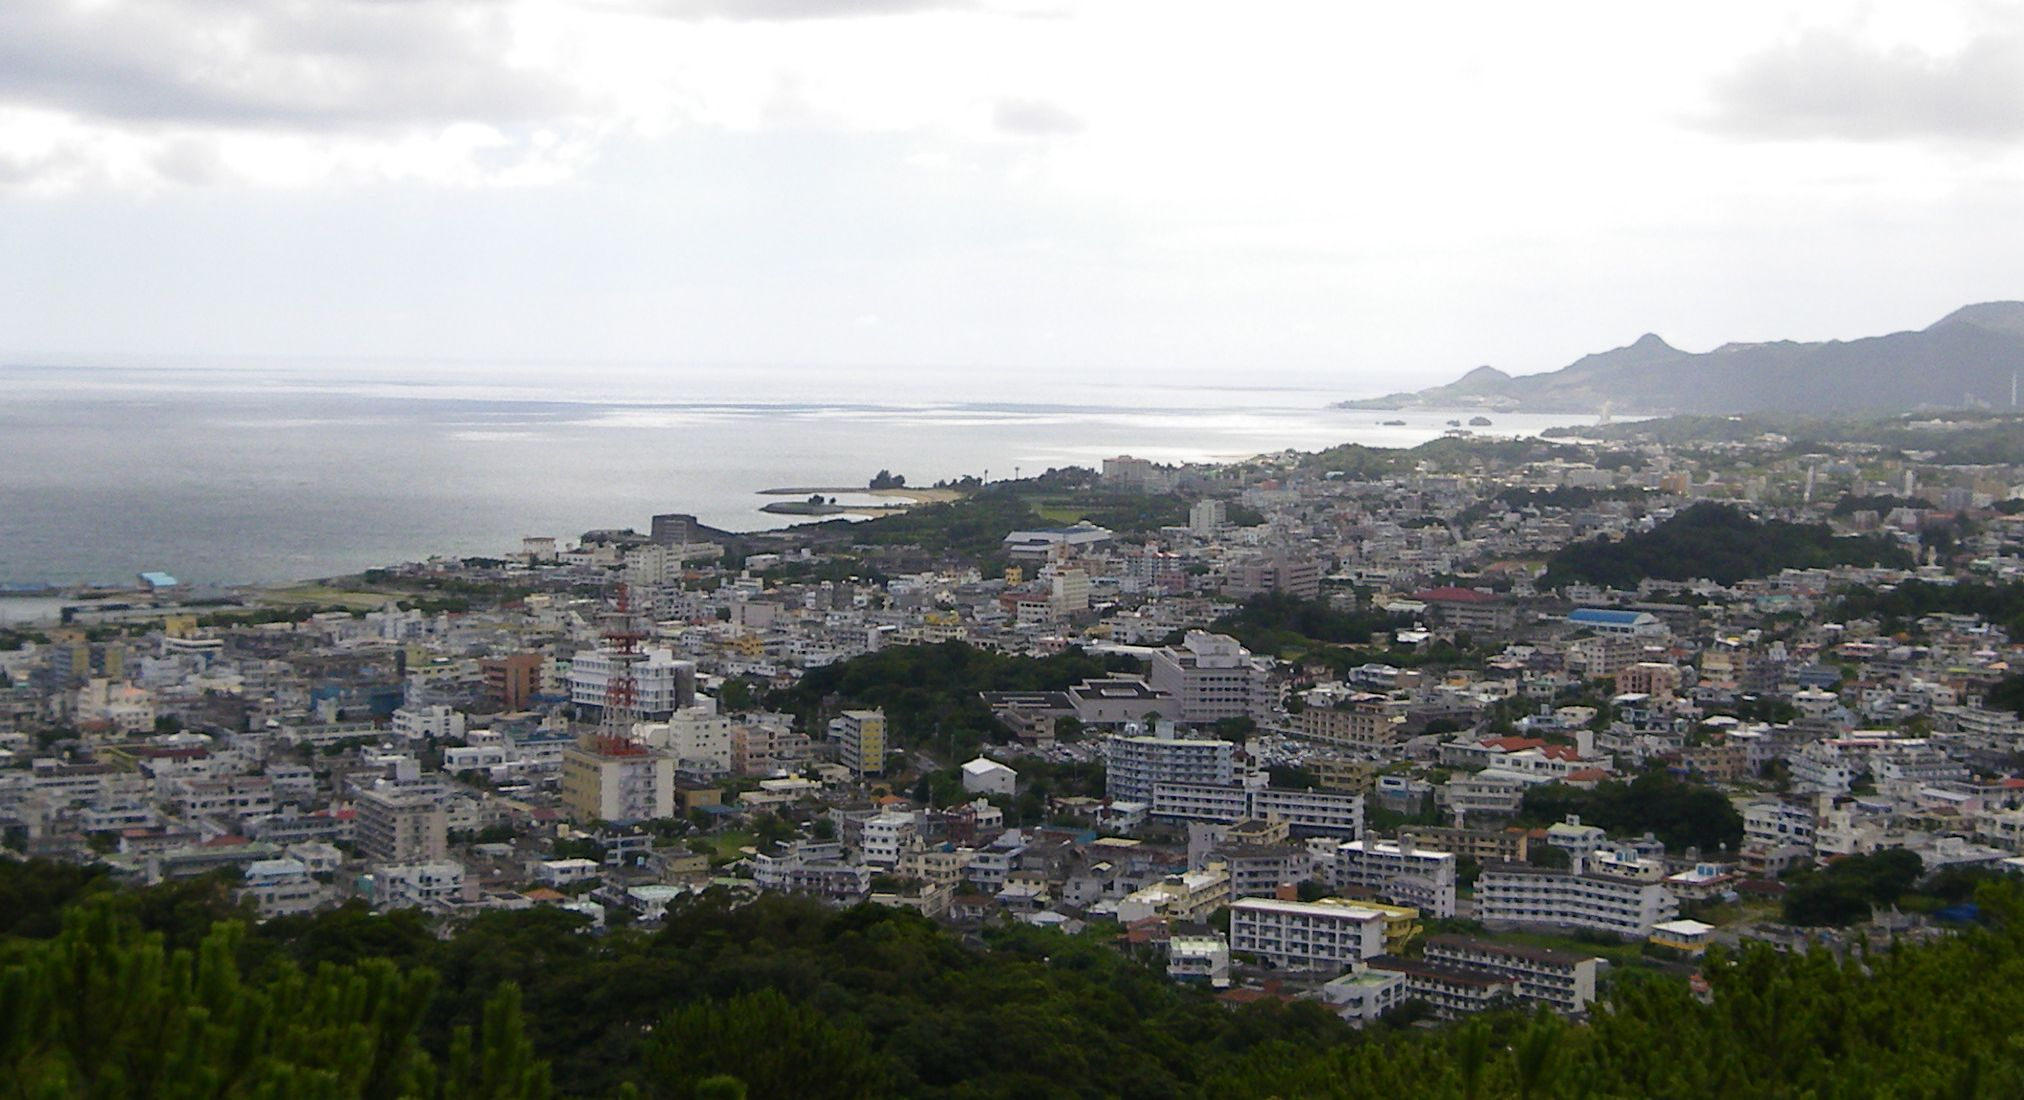 http://upload.wikimedia.org/wikipedia/commons/4/4a/Nago_cityscape.jpg